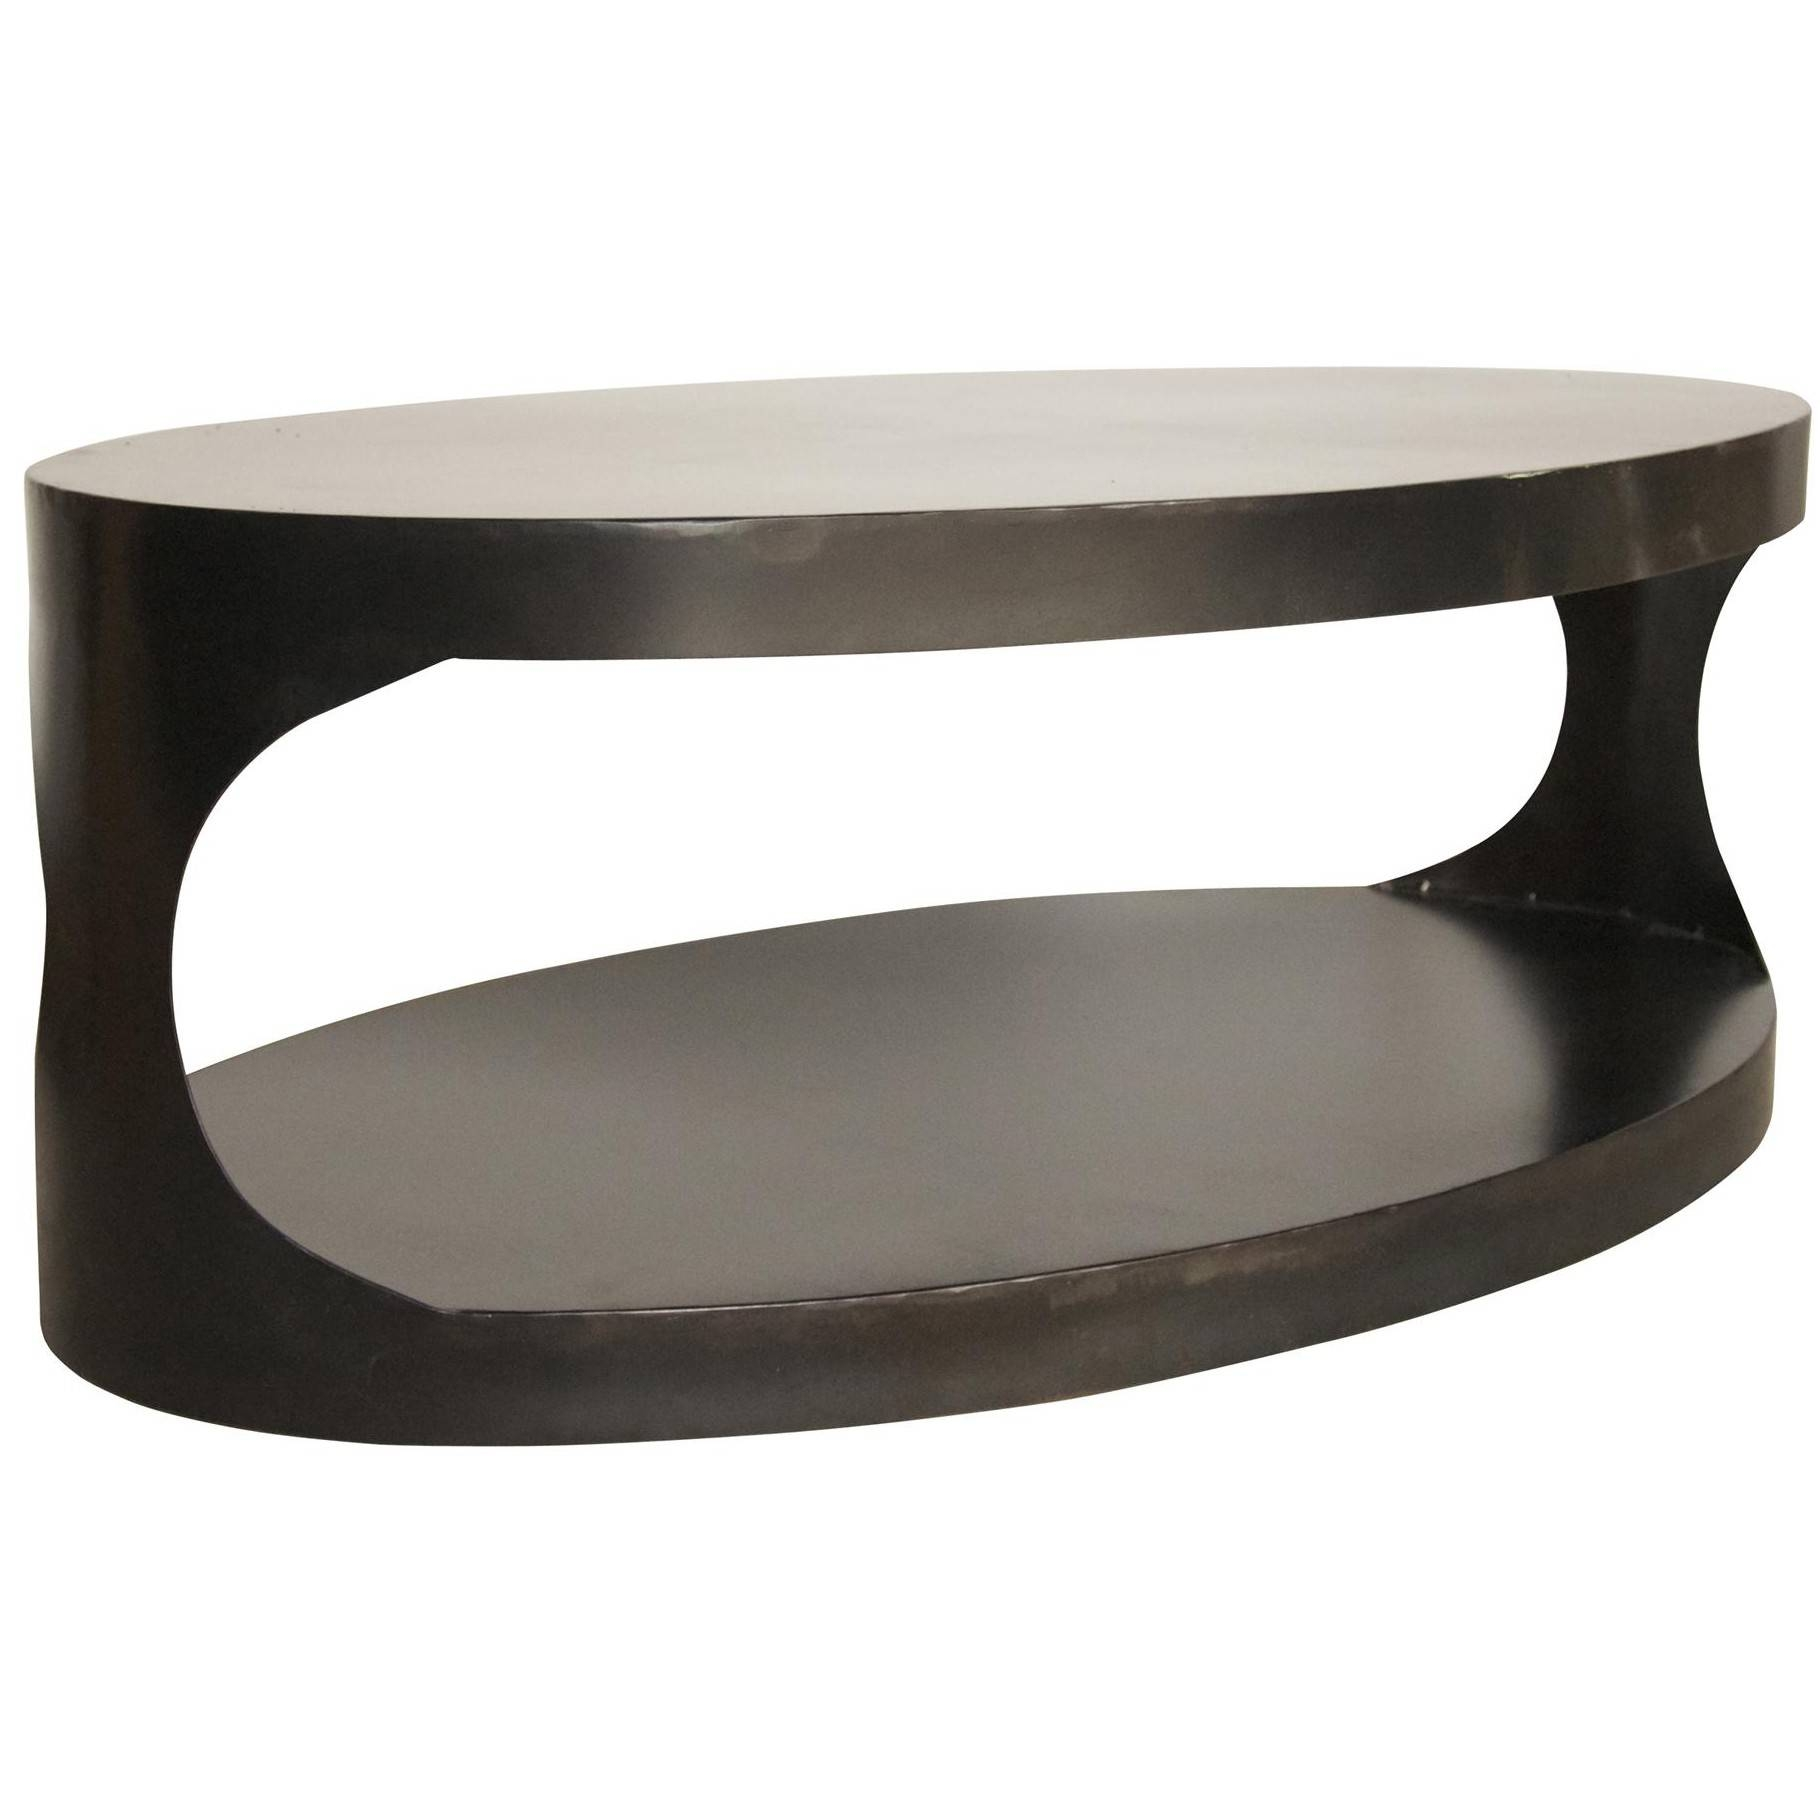 15 Ideas of Metal Oval Coffee Tables